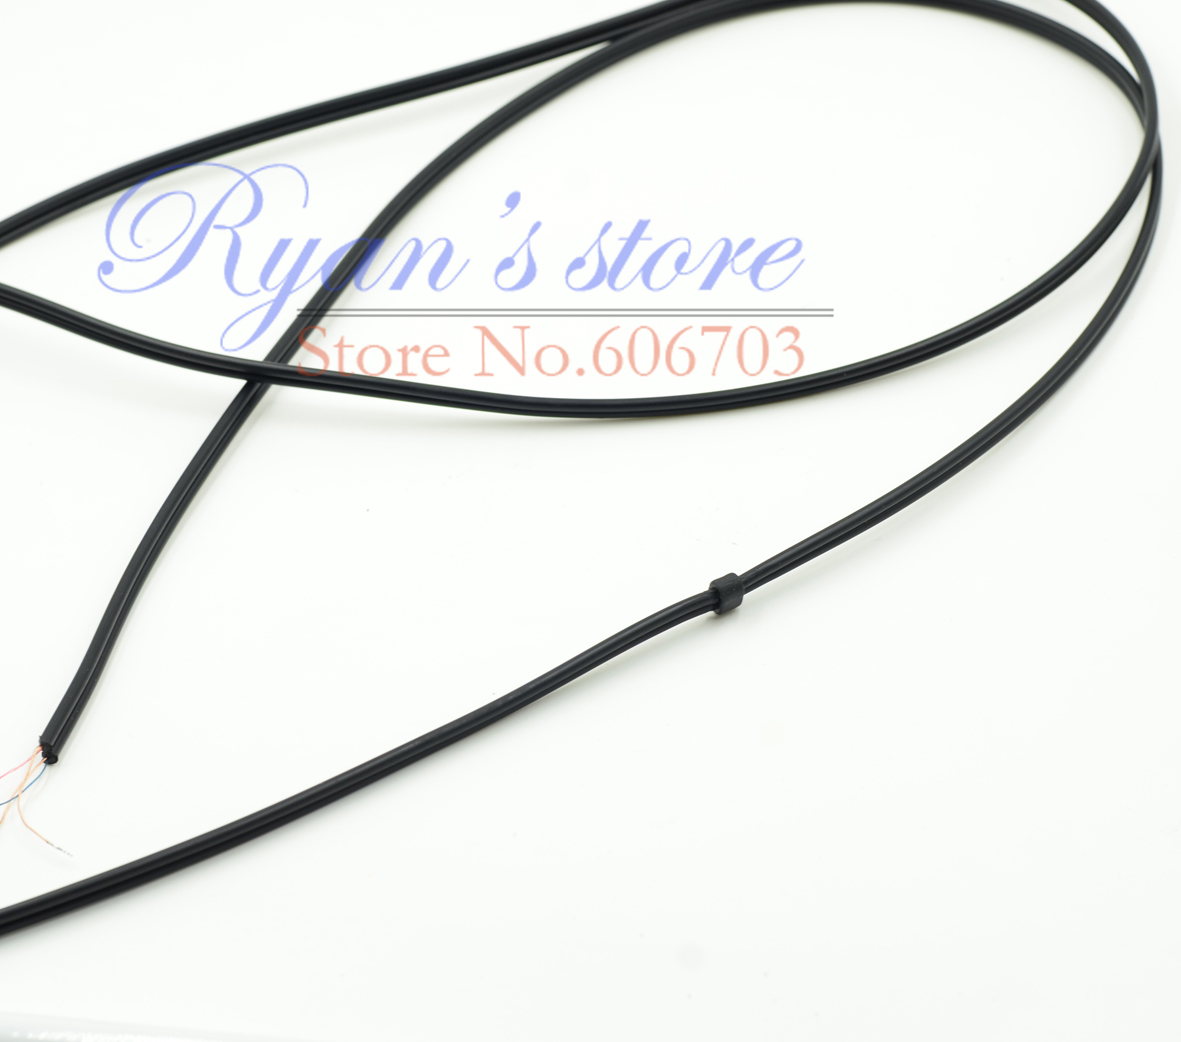 Popular Headphone Cord Repair Buy Cheap Headphone Cord Repair Lots From China Headphone Cord